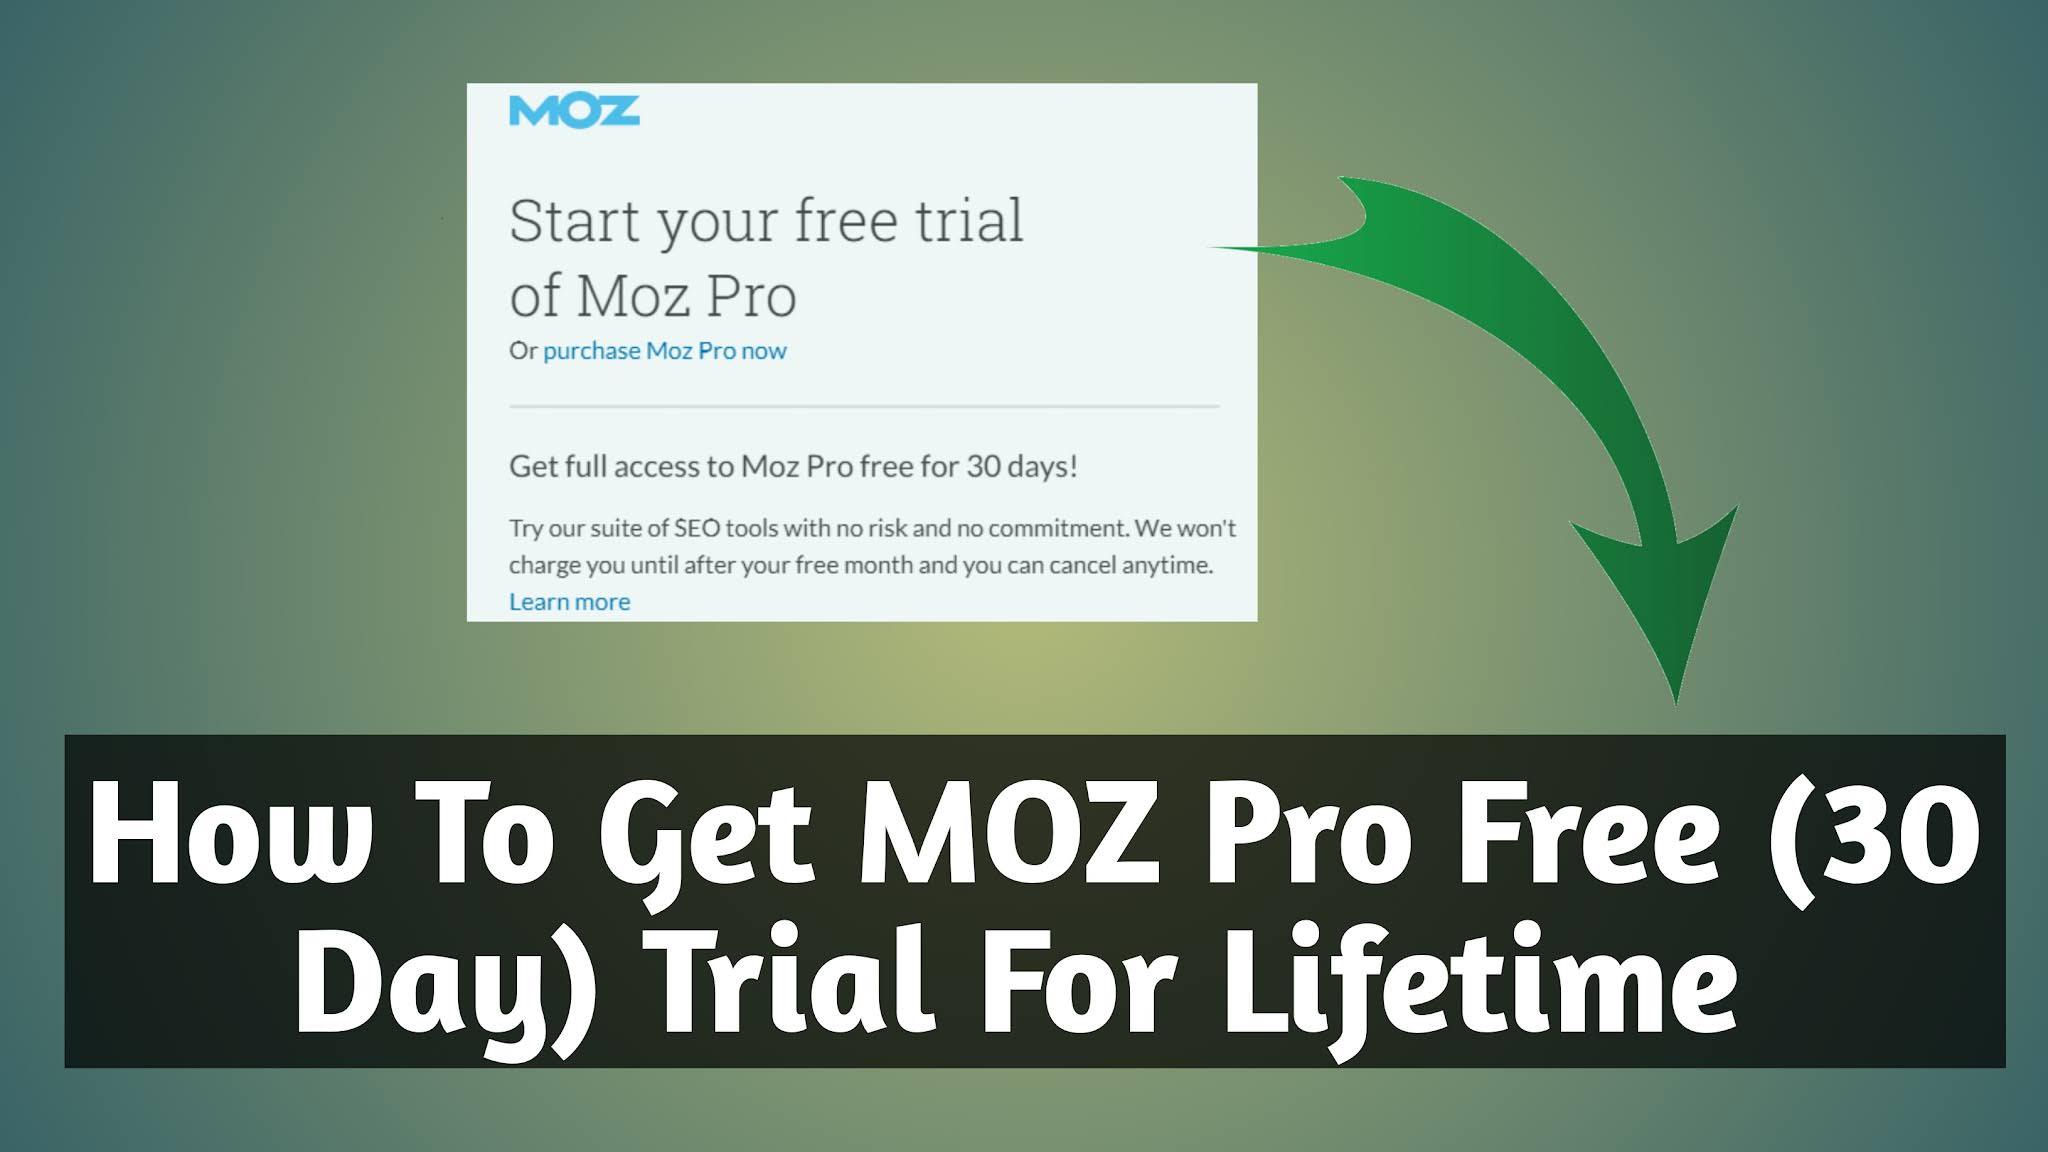 How To Get MOZ Pro Free (30 Day) Trial For Lifetime